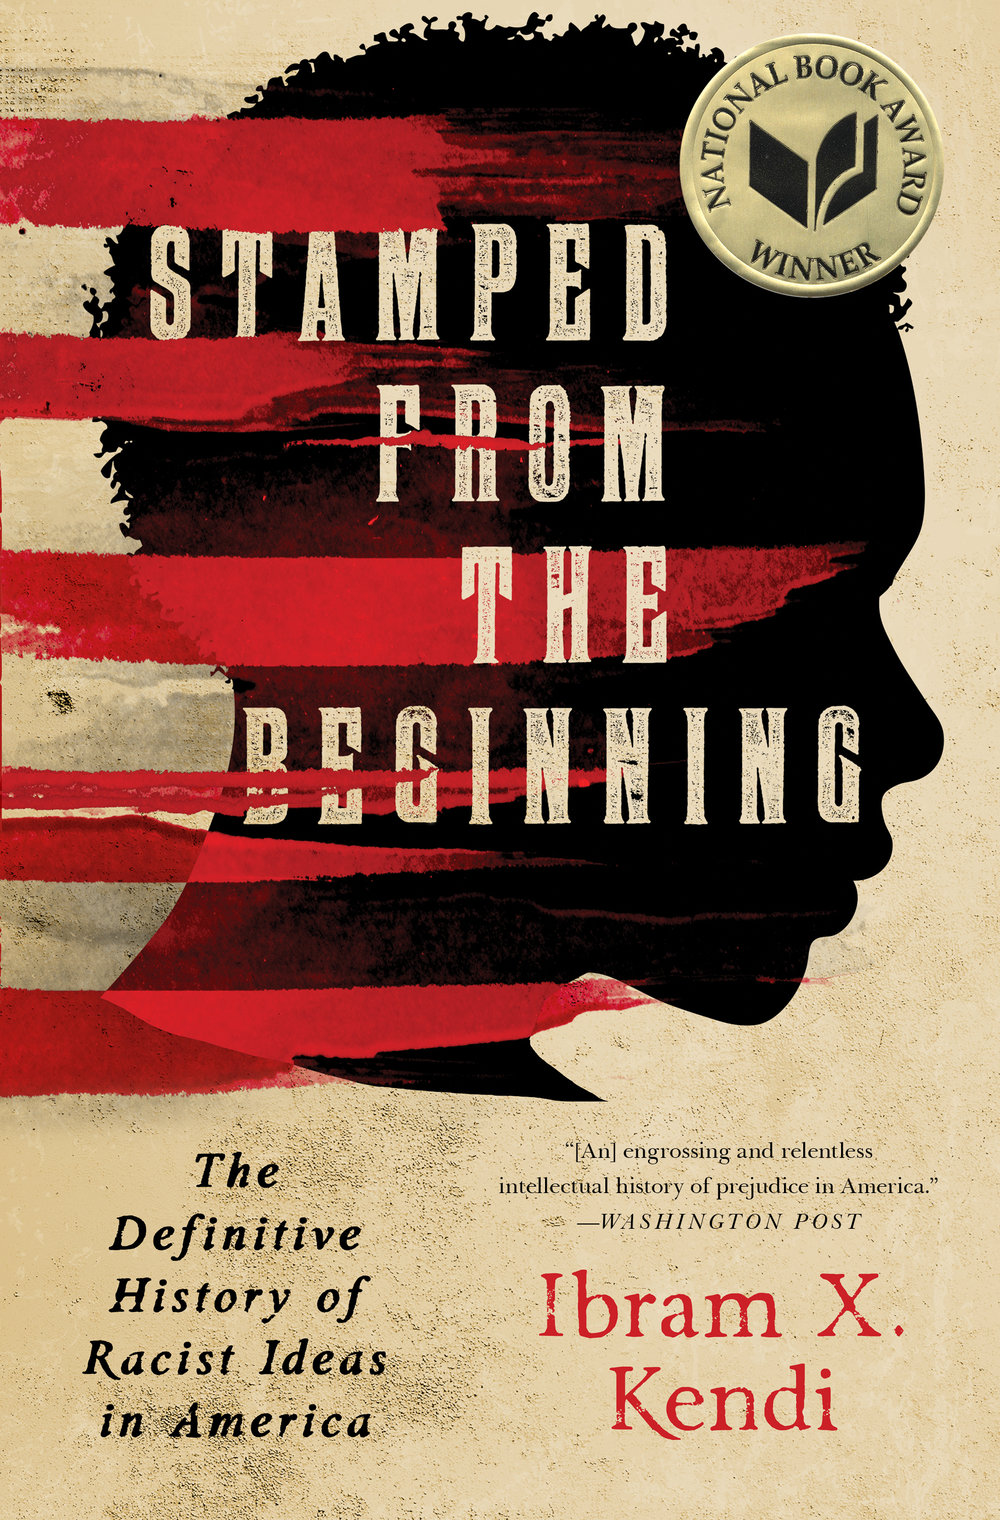 The Definitive History of Racist Ideas in America